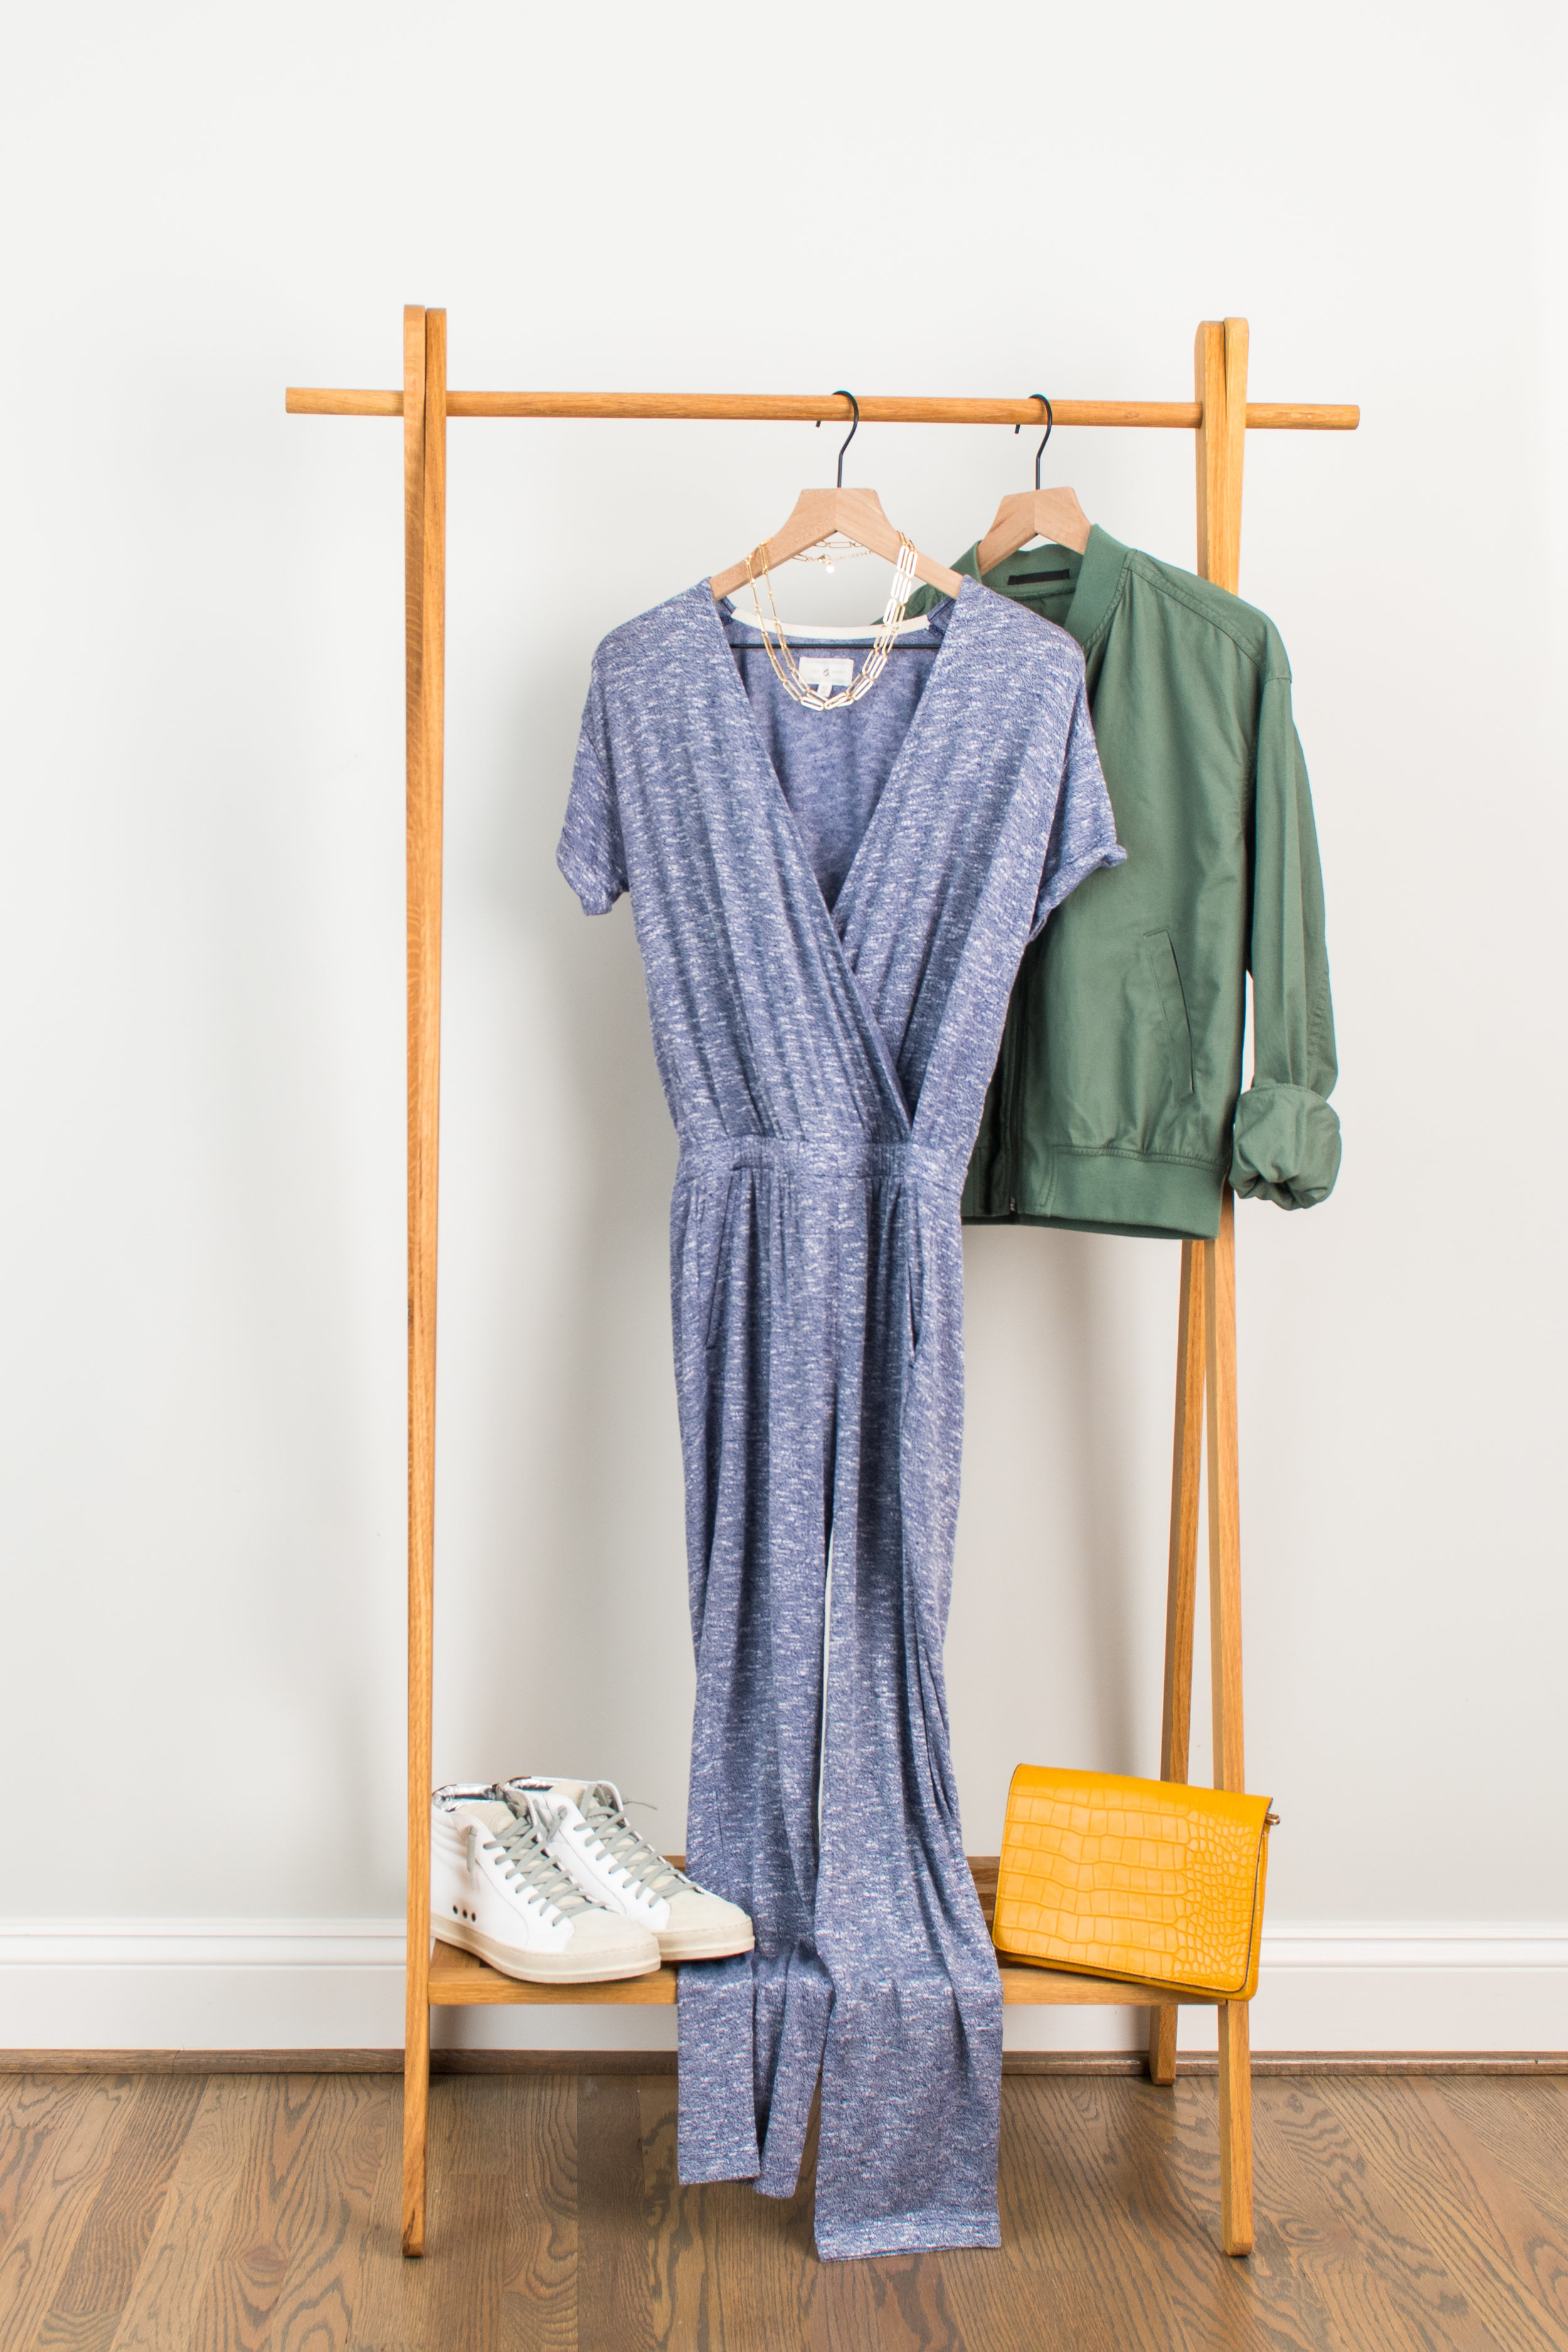 Feels Like PJ's - Wear to: Running Errands or movie outJumpsuit: 1 // 2 // 3Bomber Jacket: 1 // 2 // 3Sneakers: 1 // 2 // 3Jewelry: 1 // 2 // 3Bag : 1 // 2 // 3